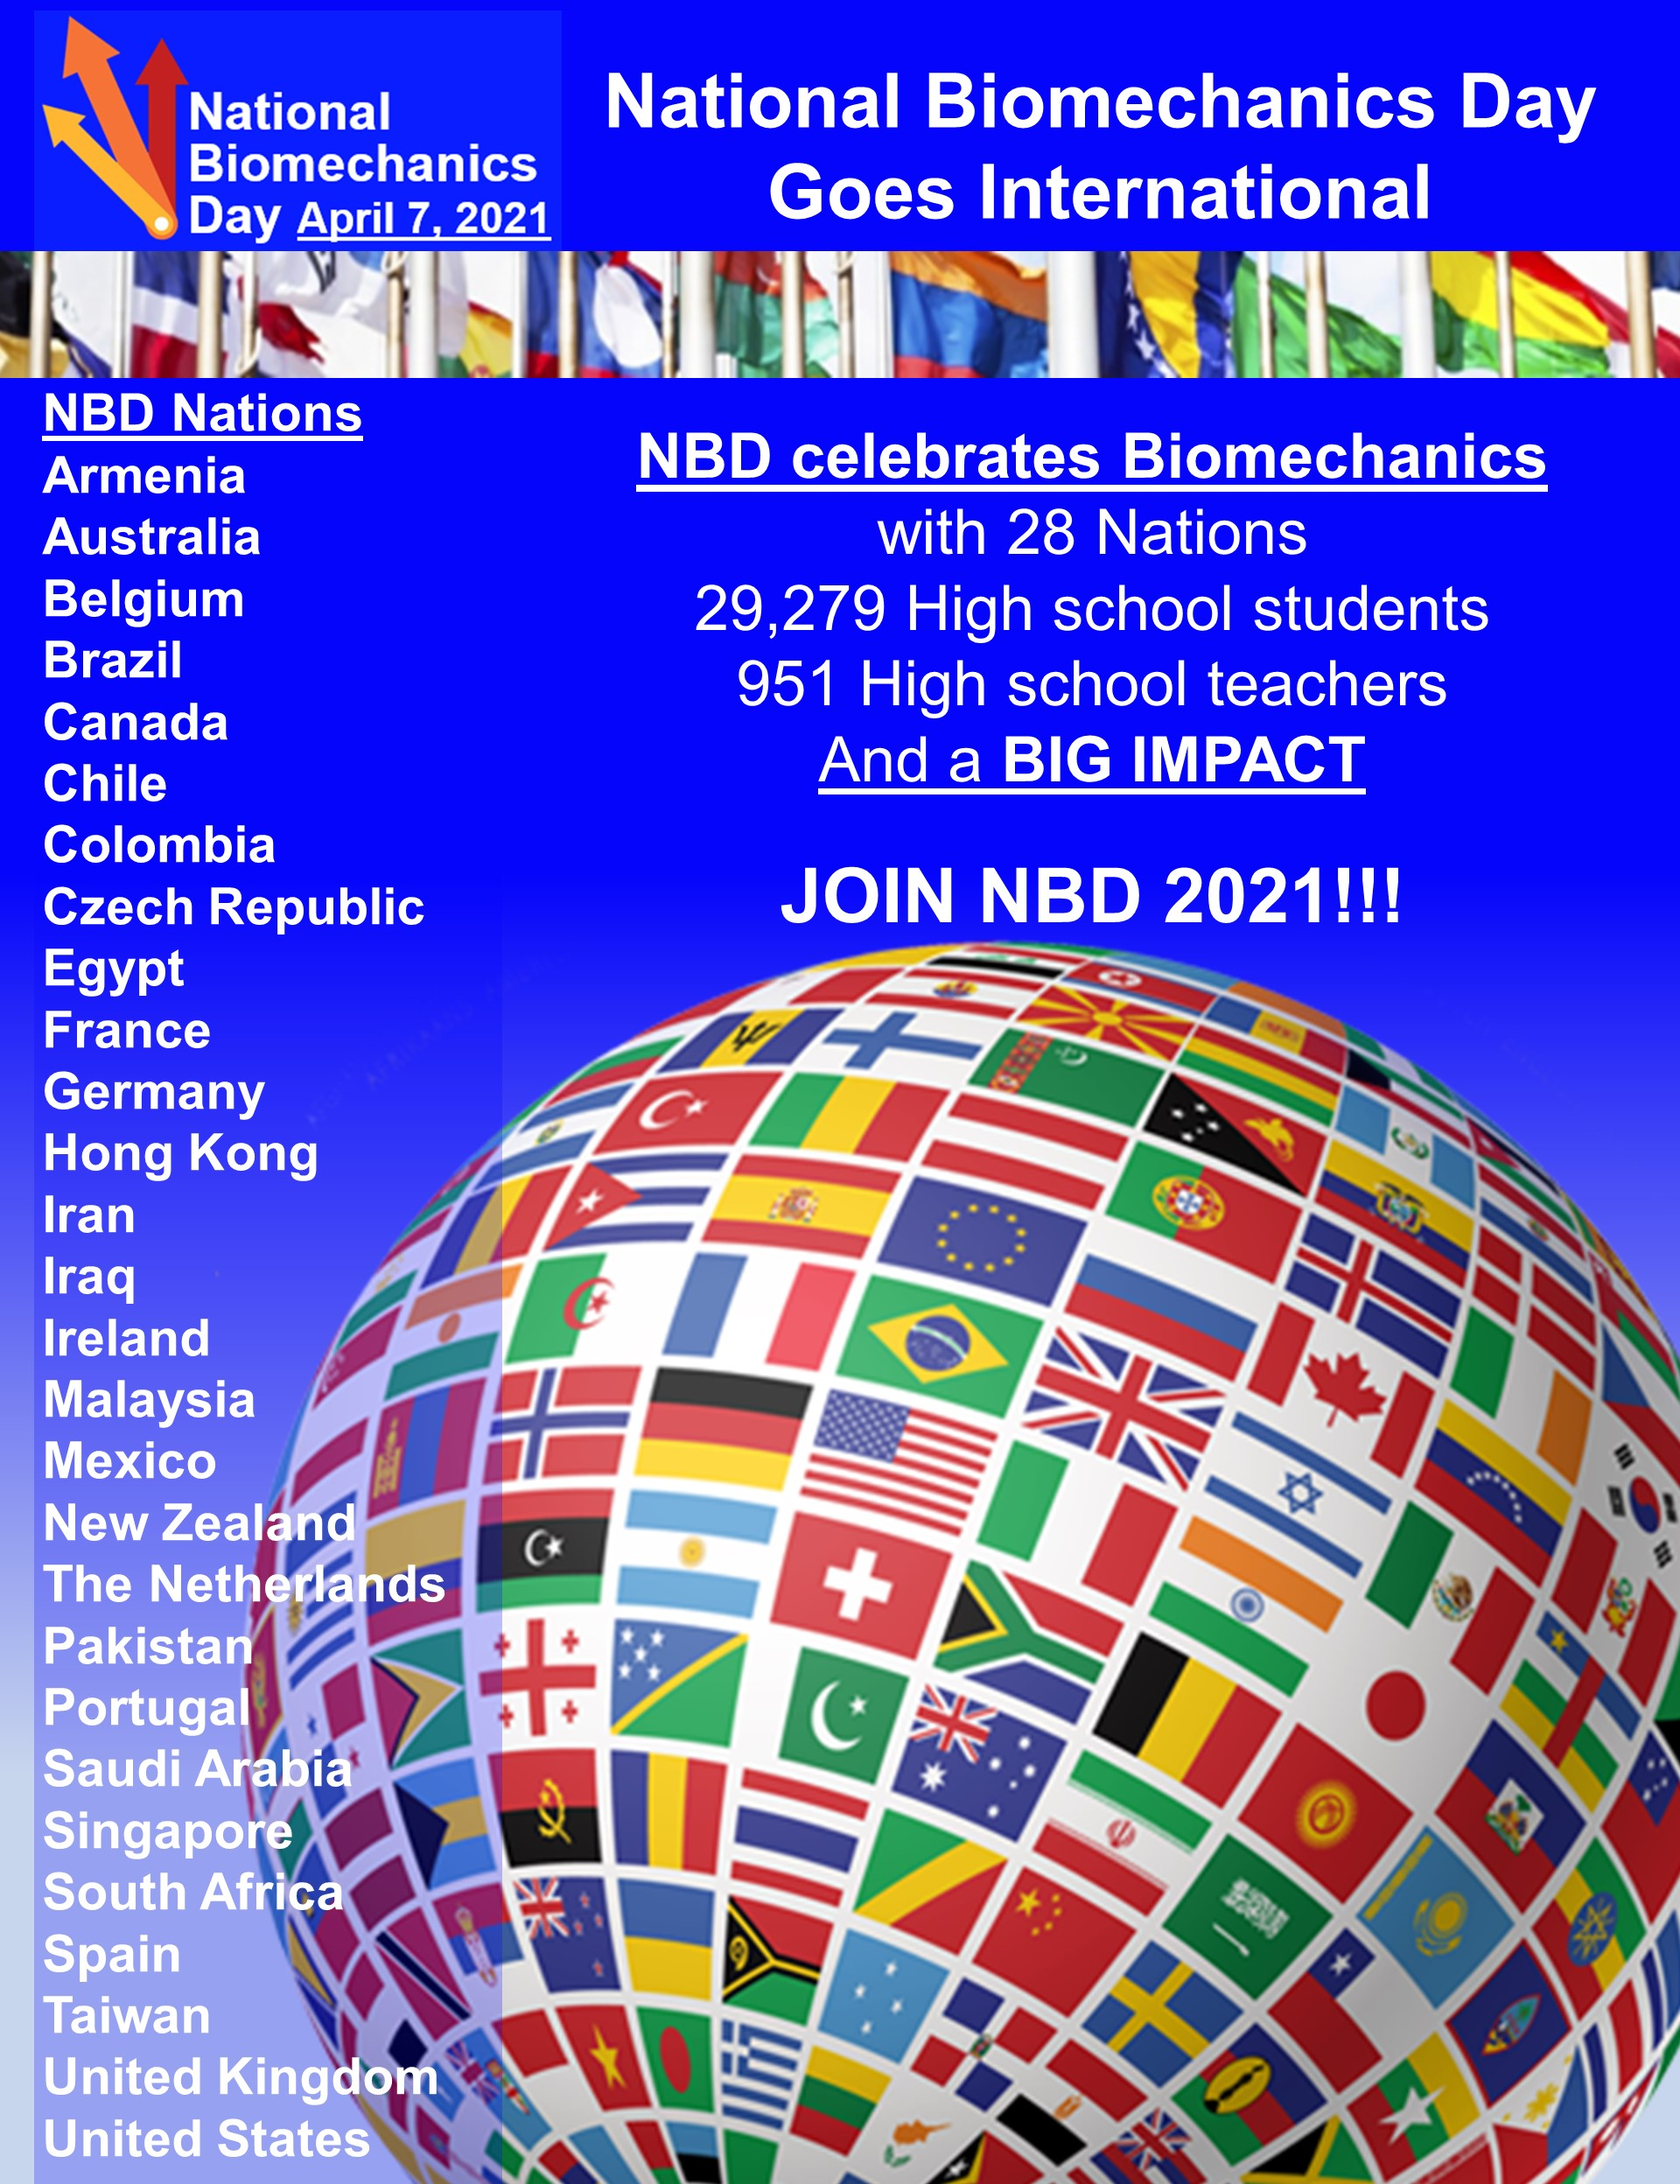 nbd 2021 posters worldwide nbds